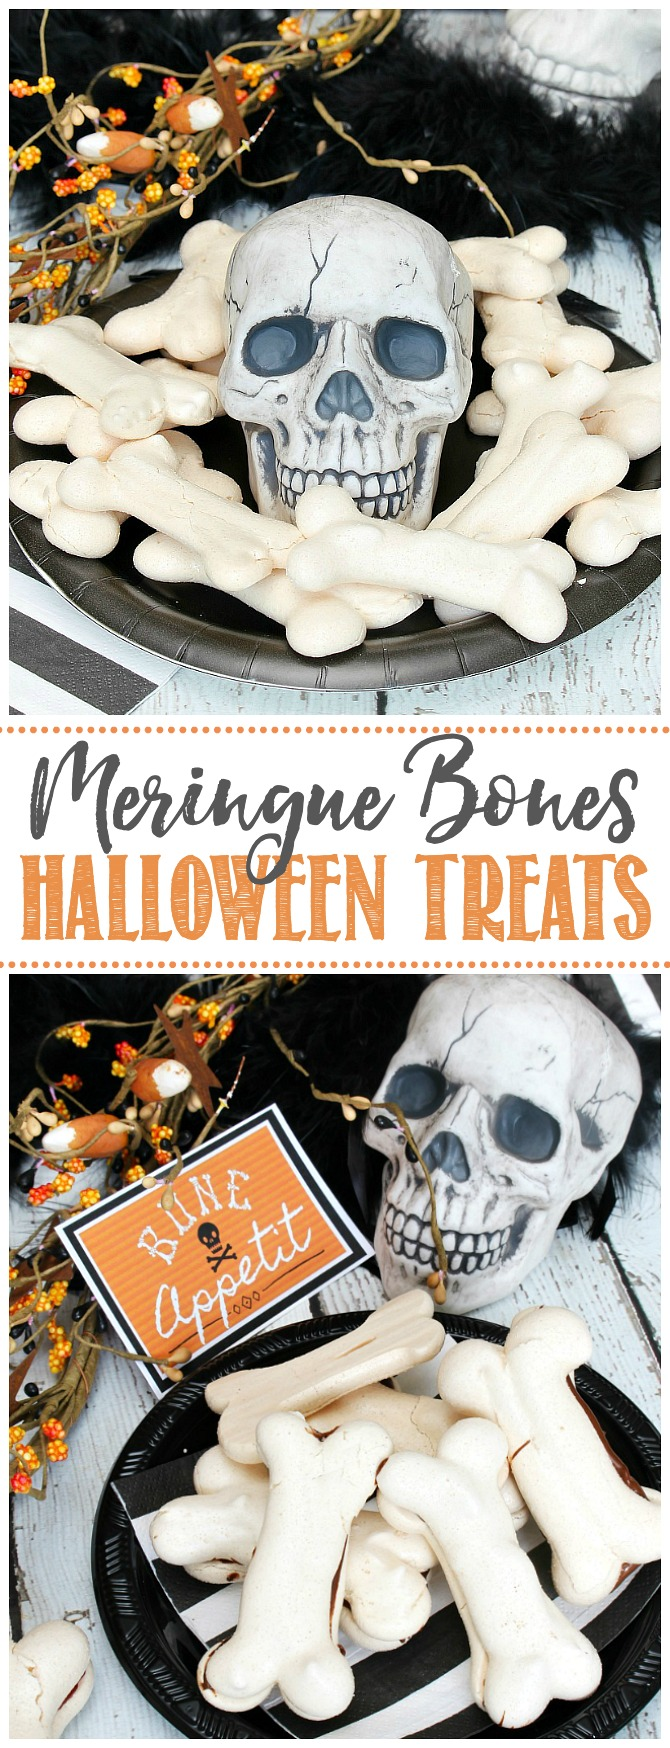 Halloween treat bones made from meringue displayed on a plate with a skull for decor.